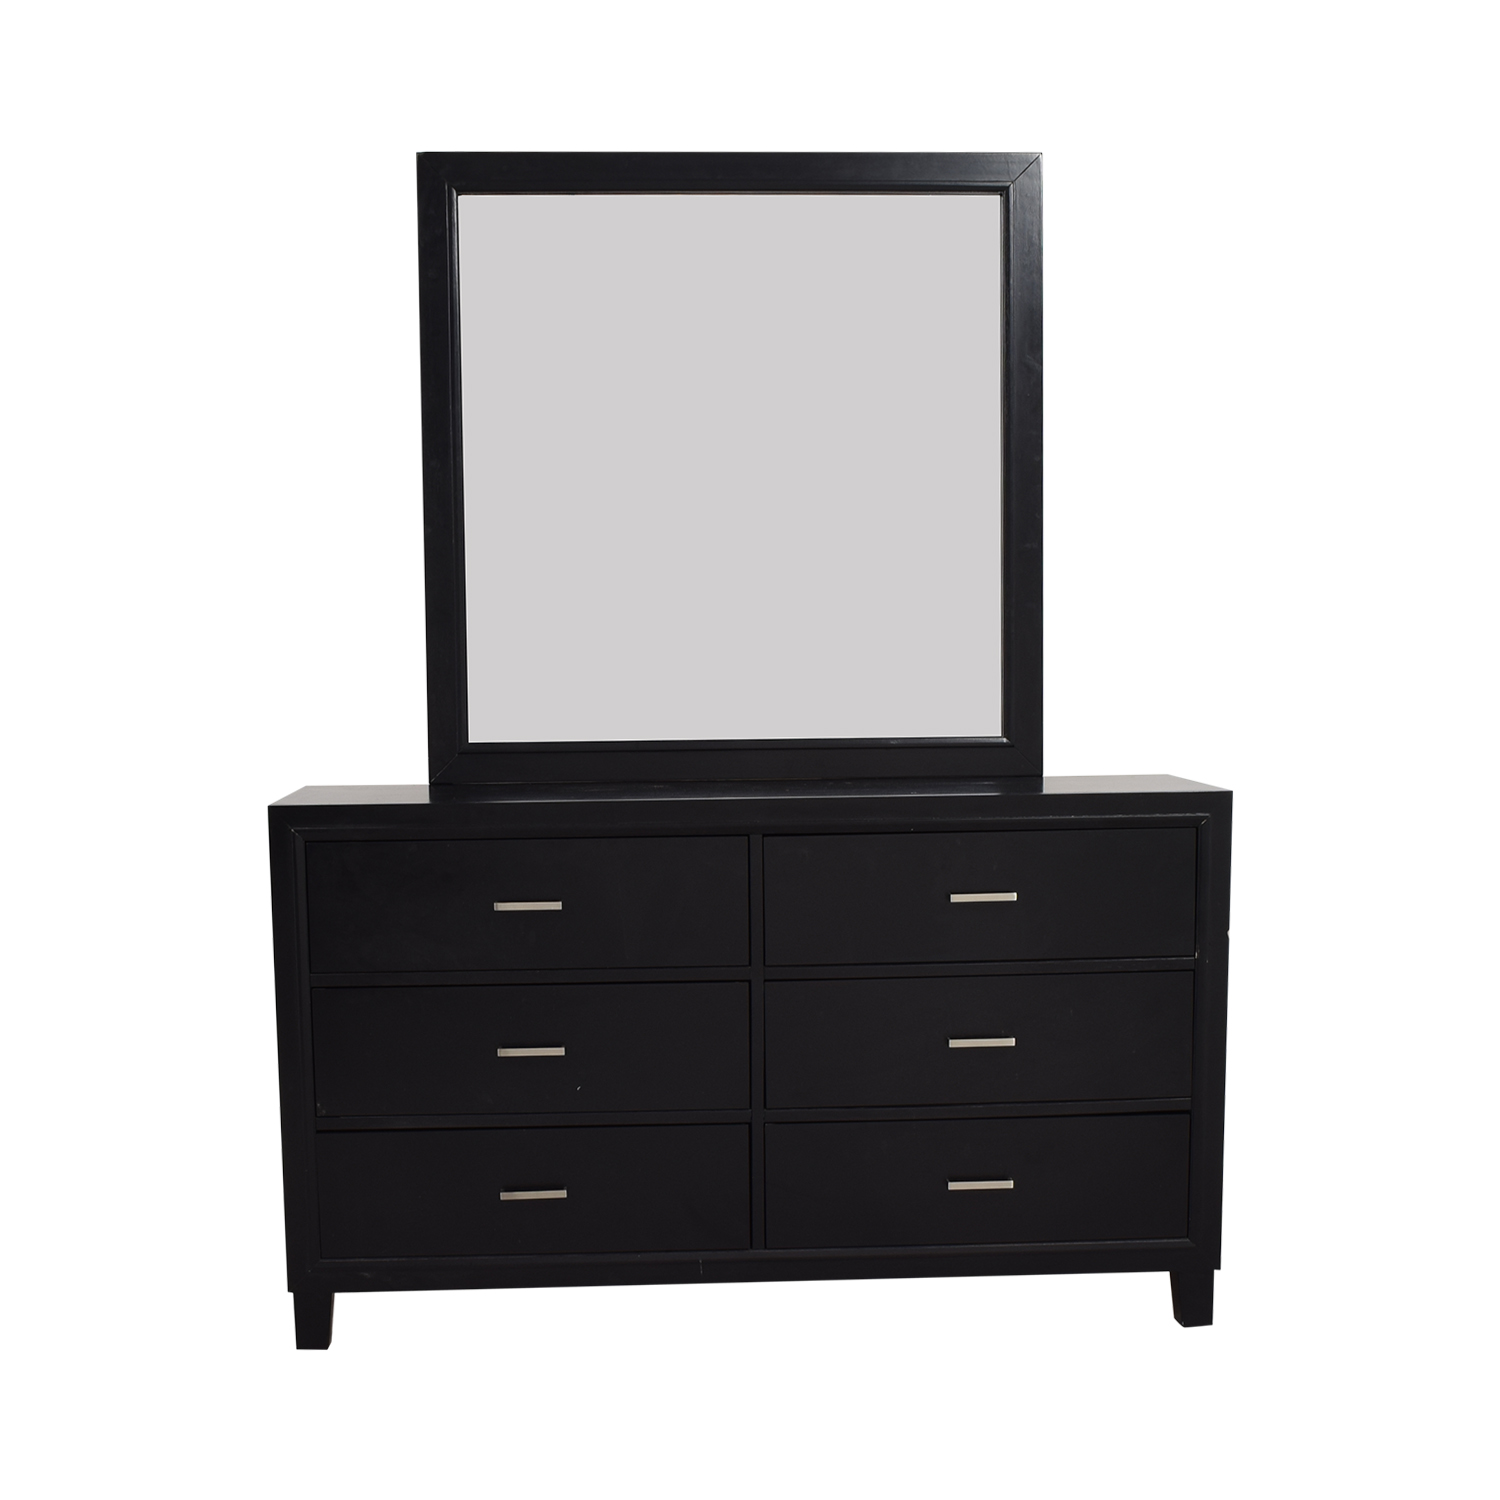 buy Six-Drawer Dresser with Mirror online